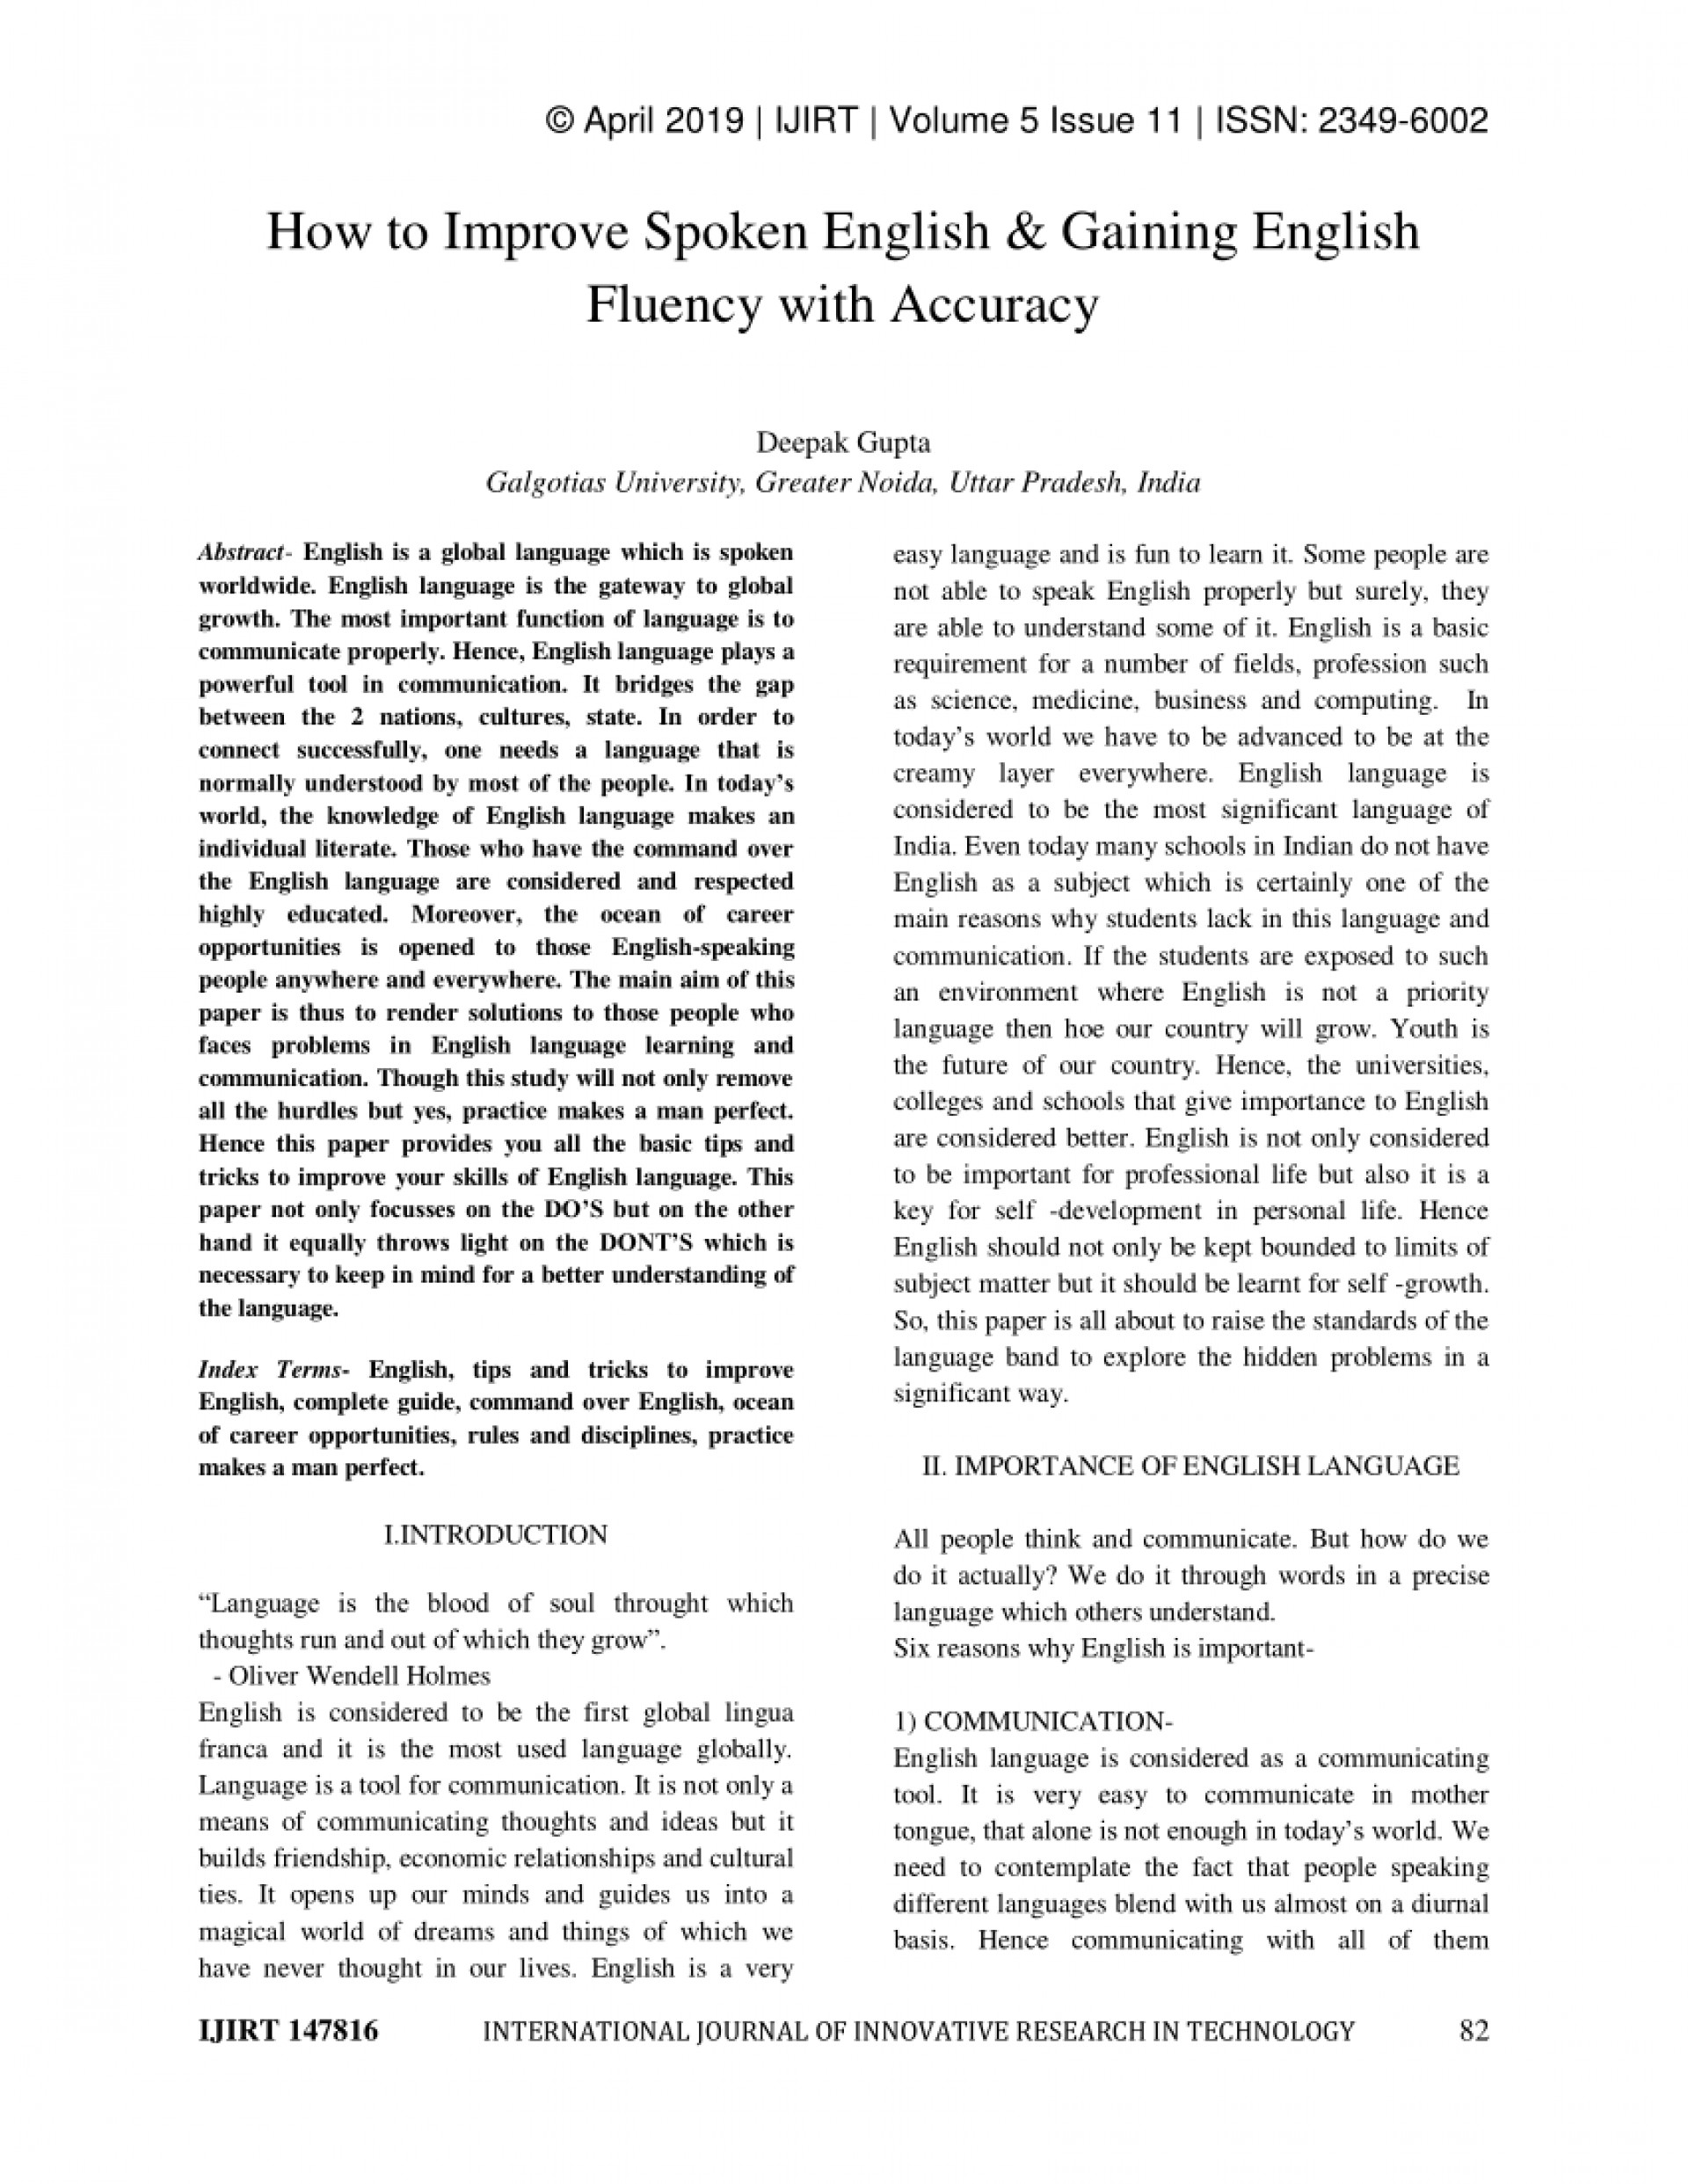 008 Research Paper English For Writing Papers Adrian Wallwork Pdf Marvelous 2011 1920